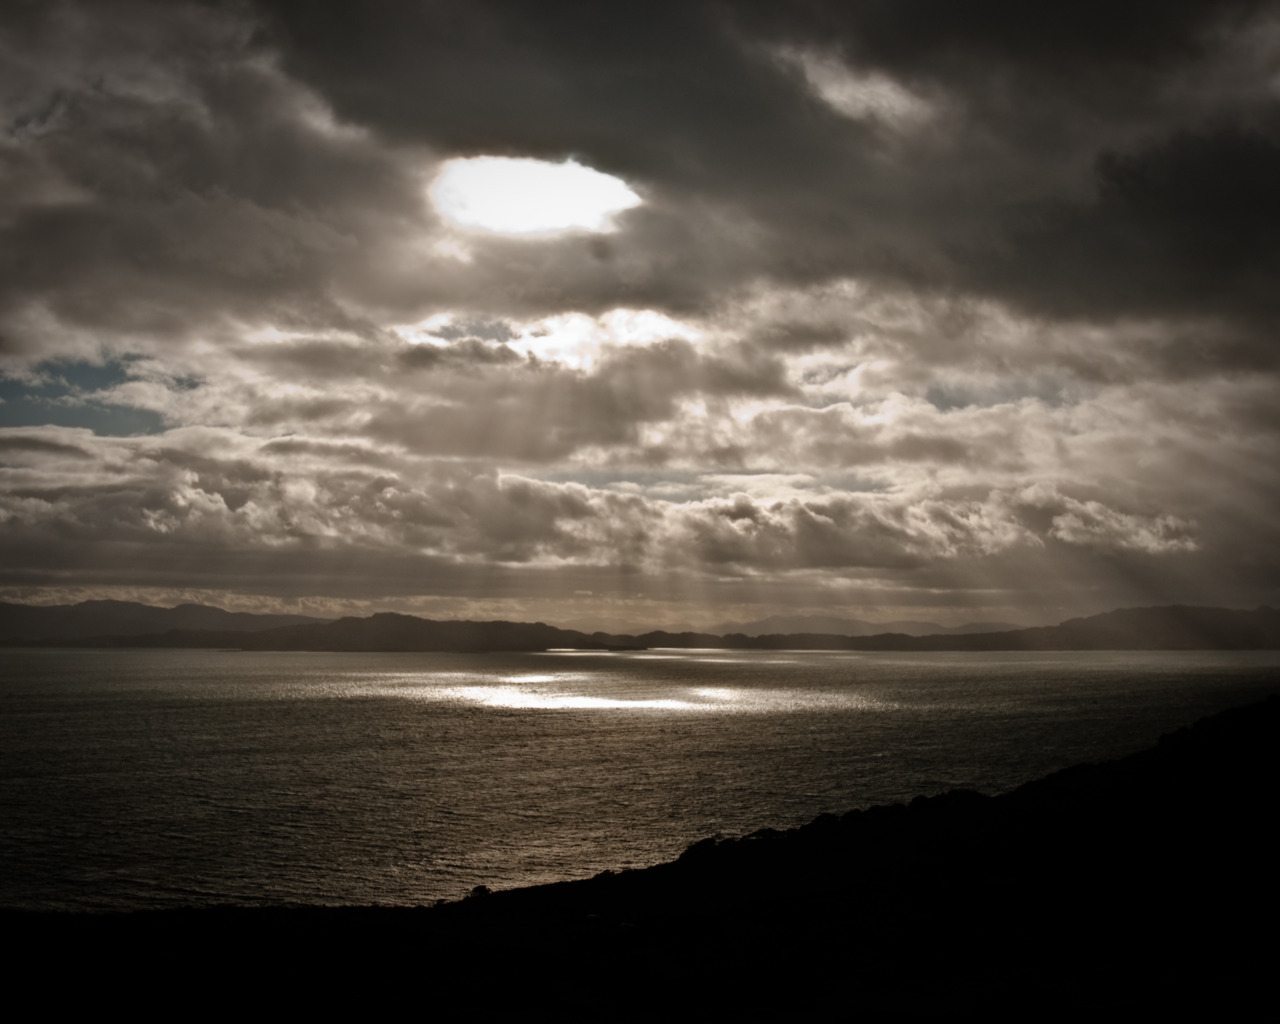 The light, Isle of Skye, Oct 2010